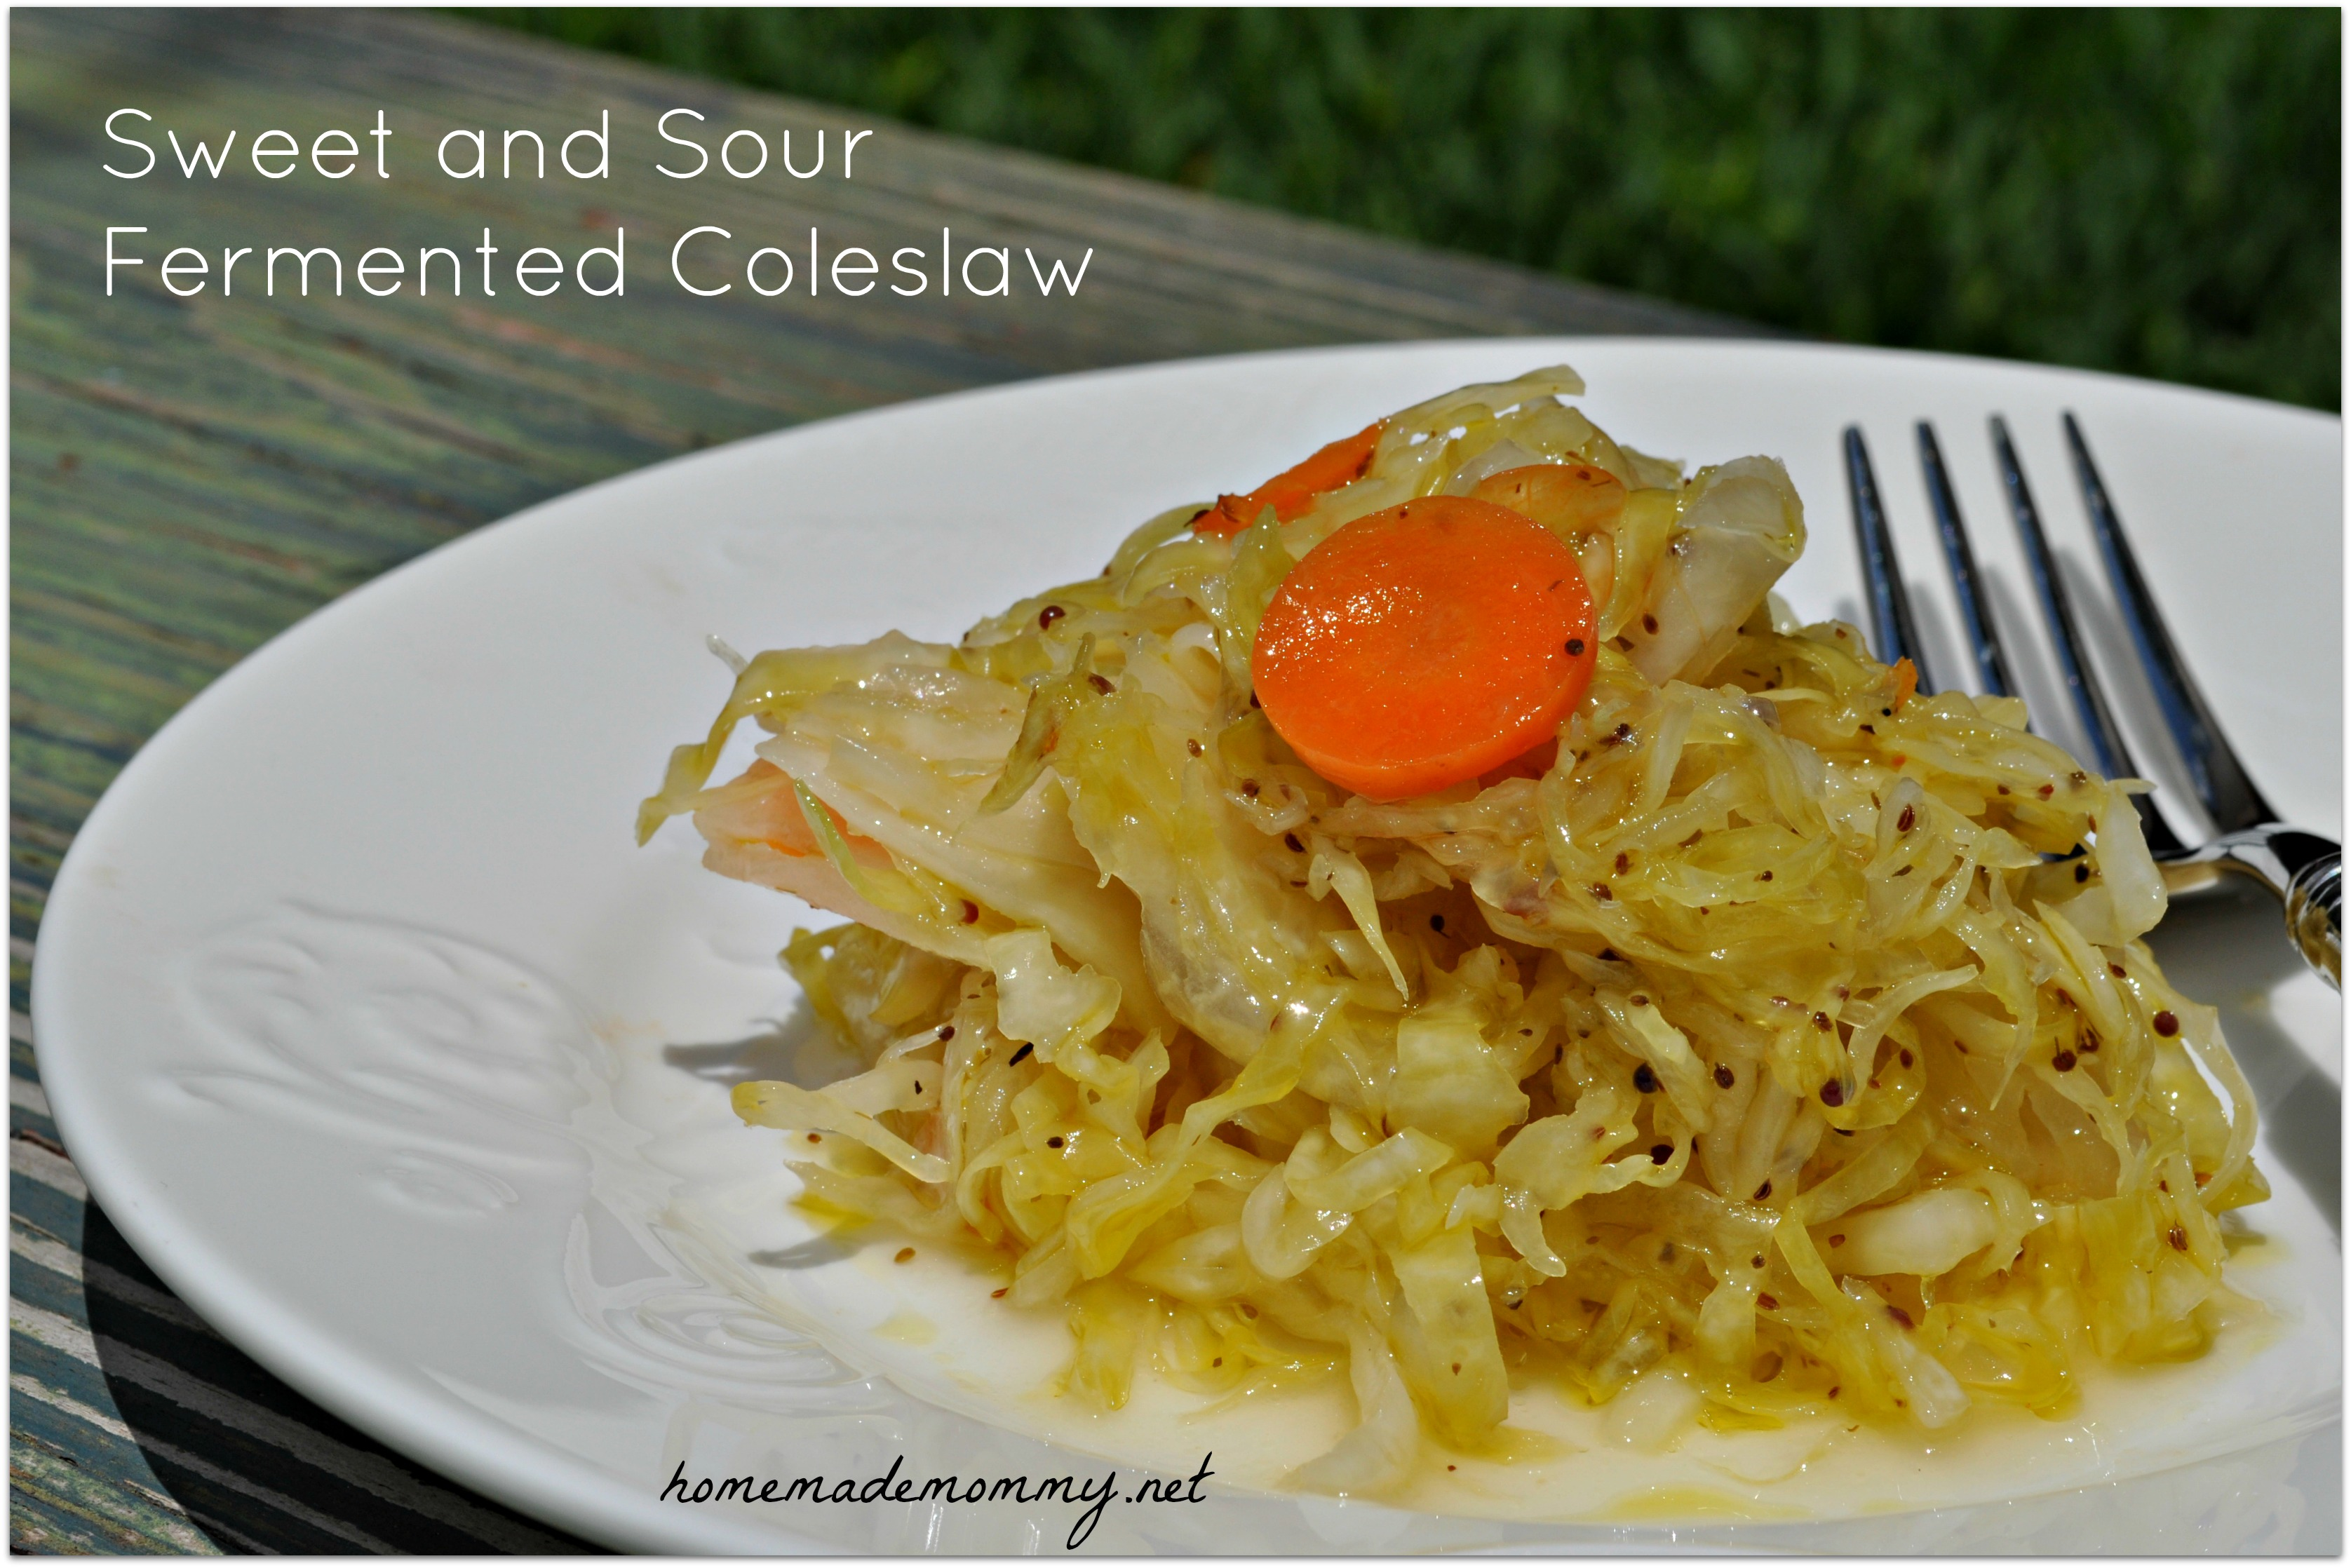 Sweet and Sour Fermented Coleslaw via Homemade Mommy